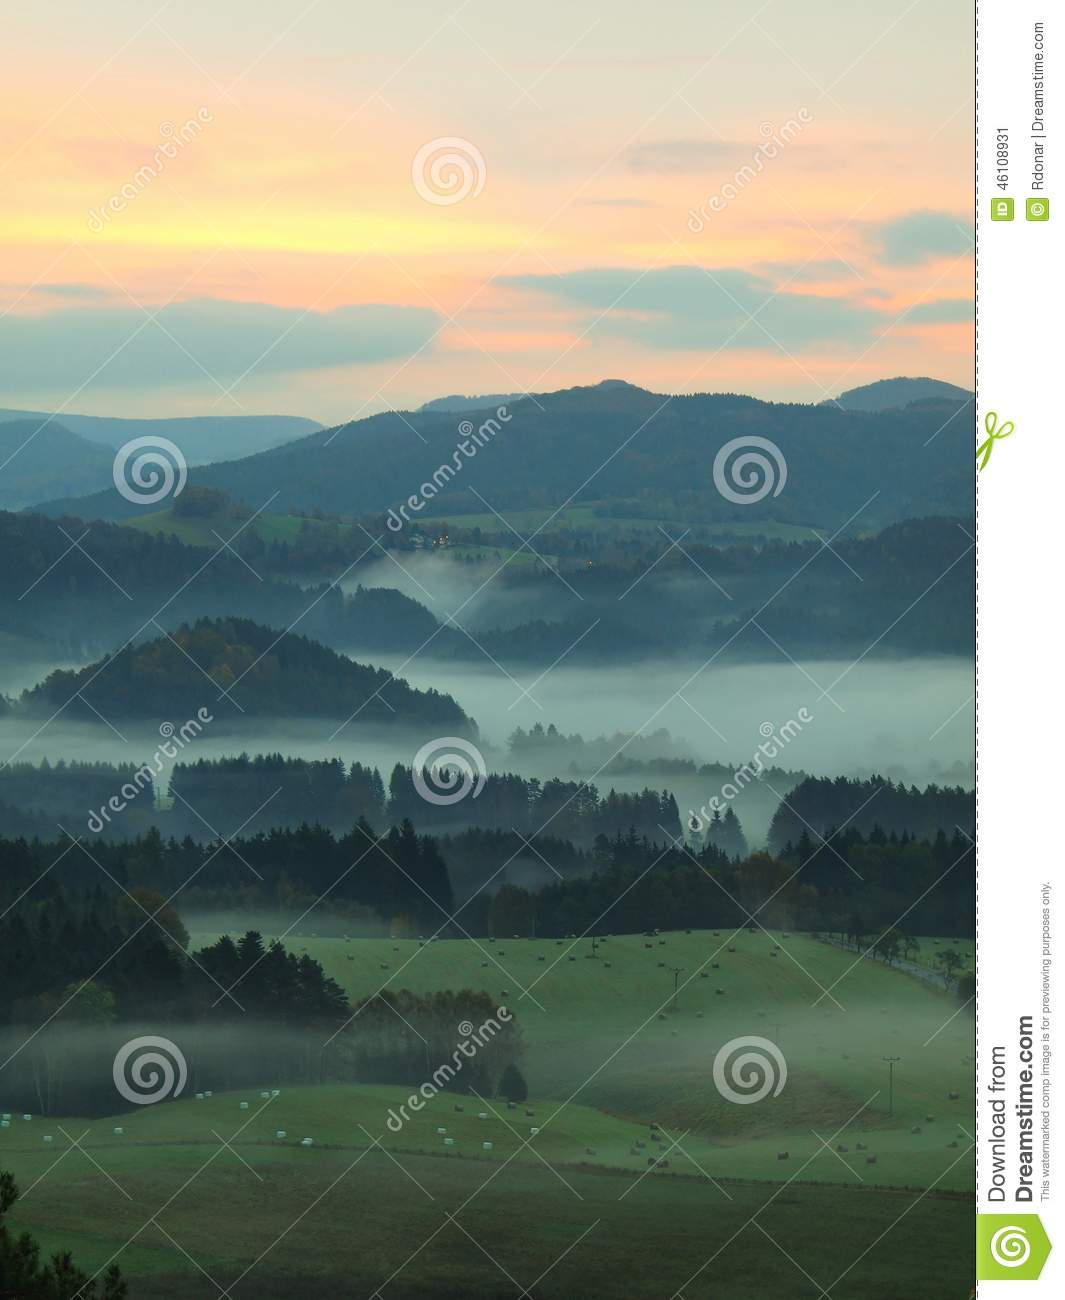 Autumn fogy countryside. View into long foggy valley full of colorful mist. Autumn melancholic landscape